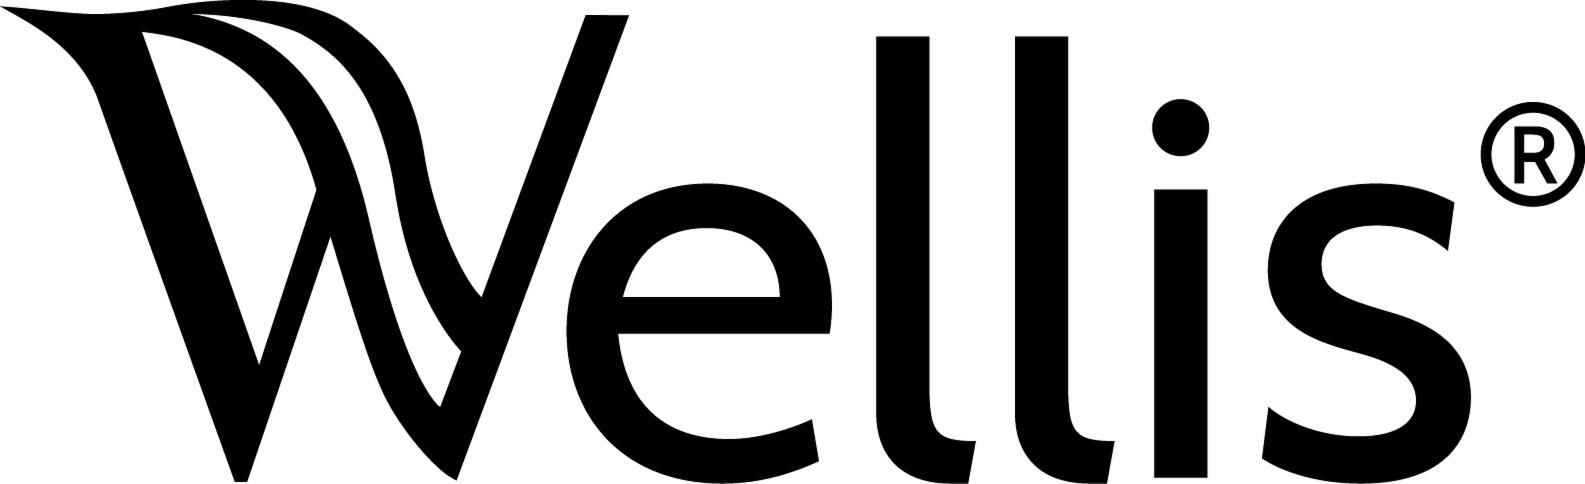 WELLIS HUNGARY LTD